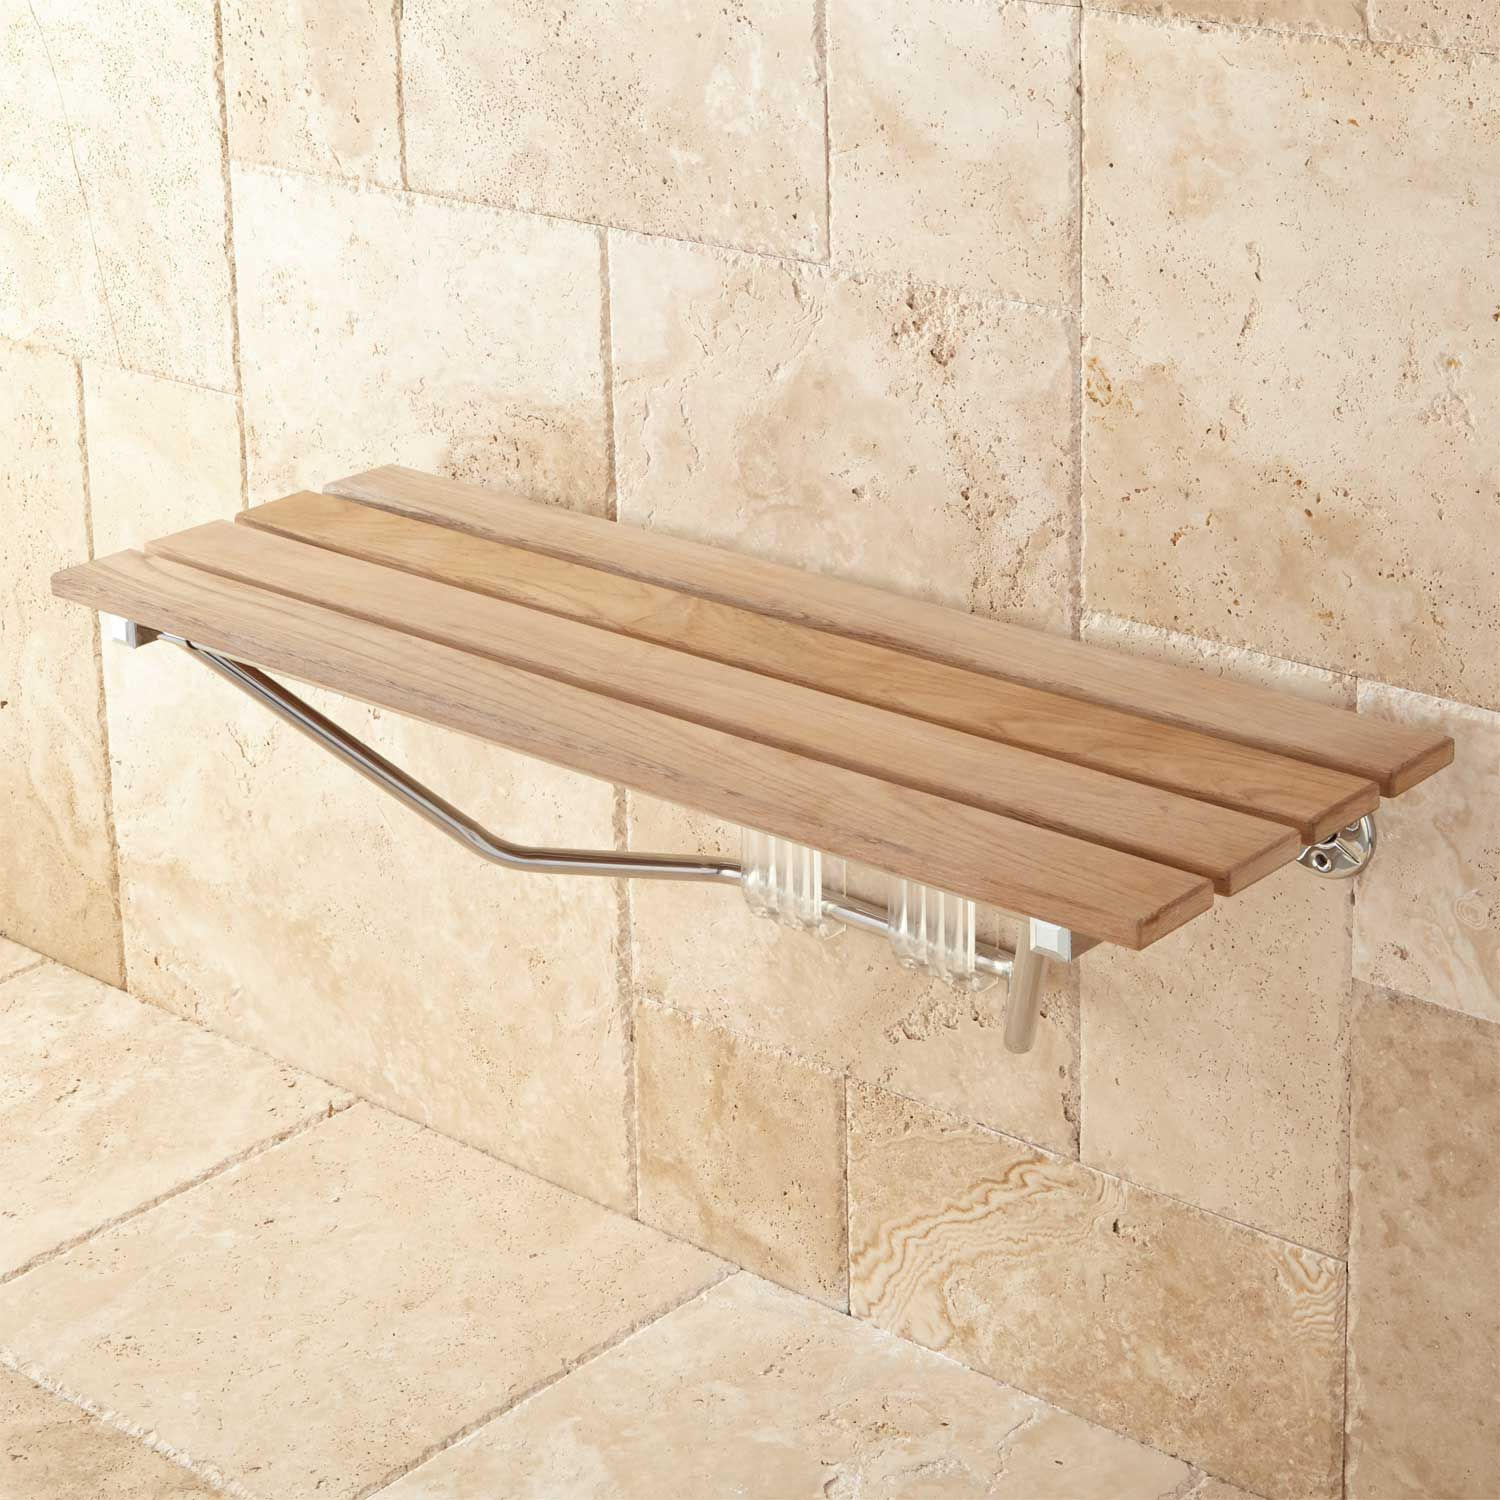 Vero Teak Medicine Cabinet | Shower seat, Teak and Shower drain